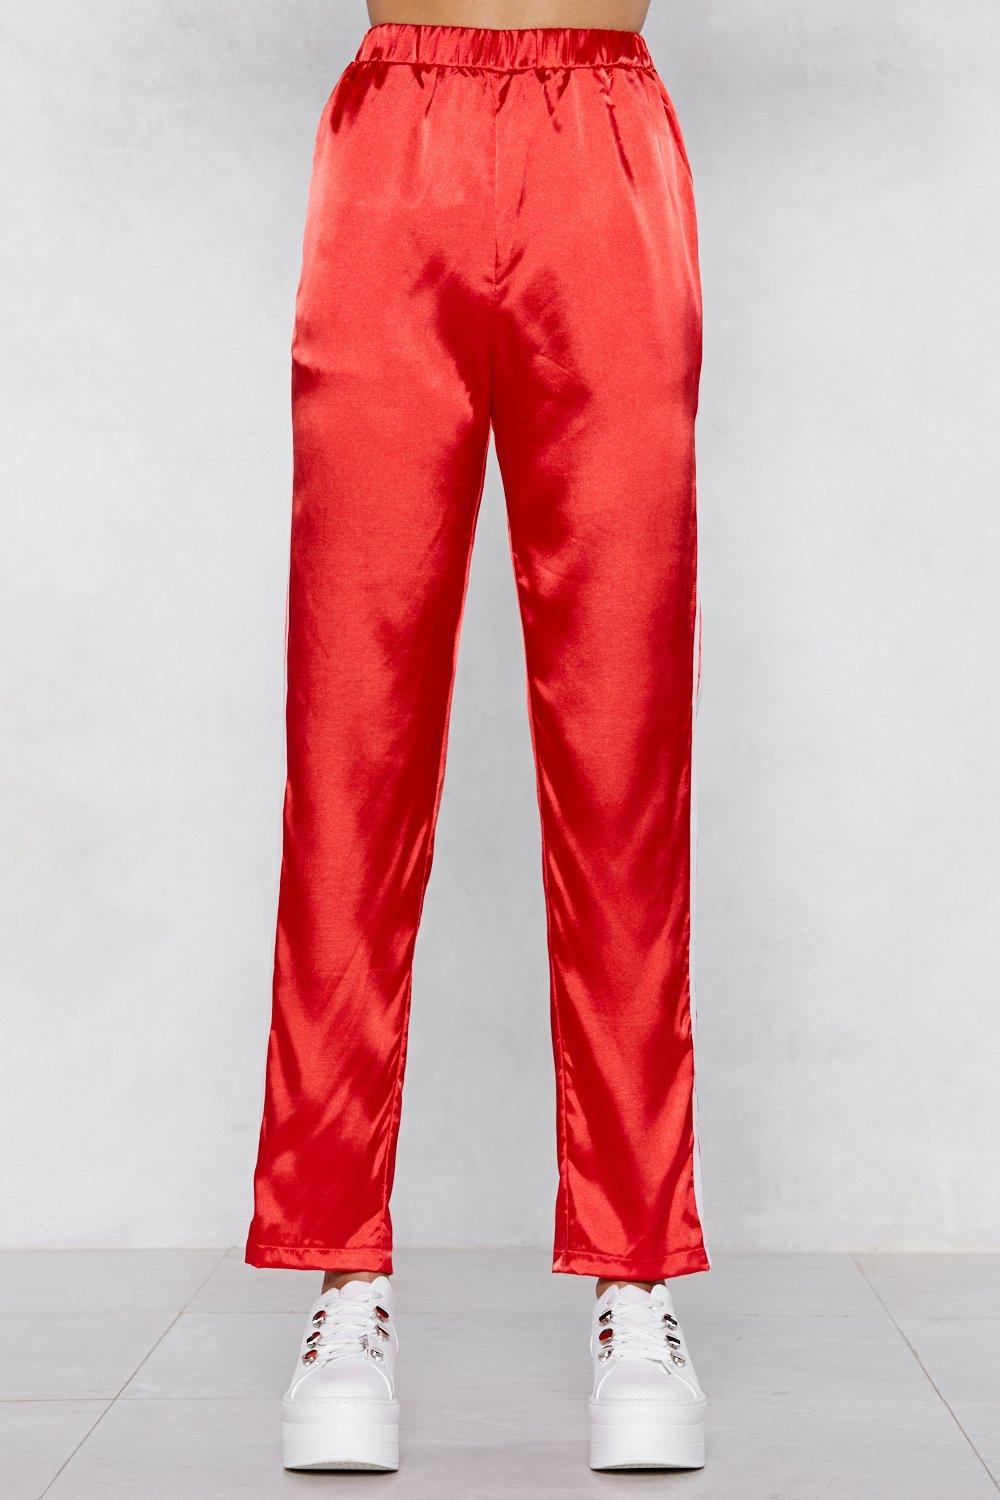 ad7bb007e34 Satin the Drivers Seat Track Pants   Shop Clothes at Nasty Gal!